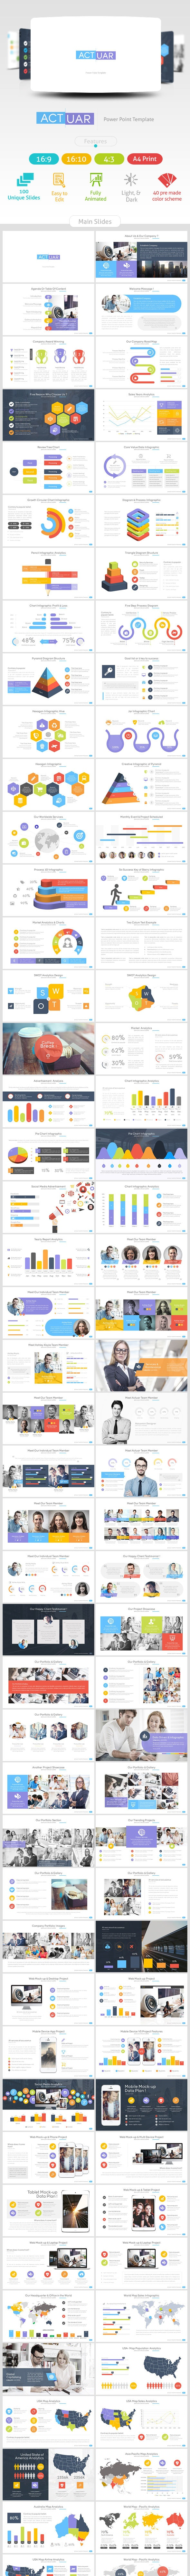 Actuar Power Point Presentation Template - Business PowerPoint Templates